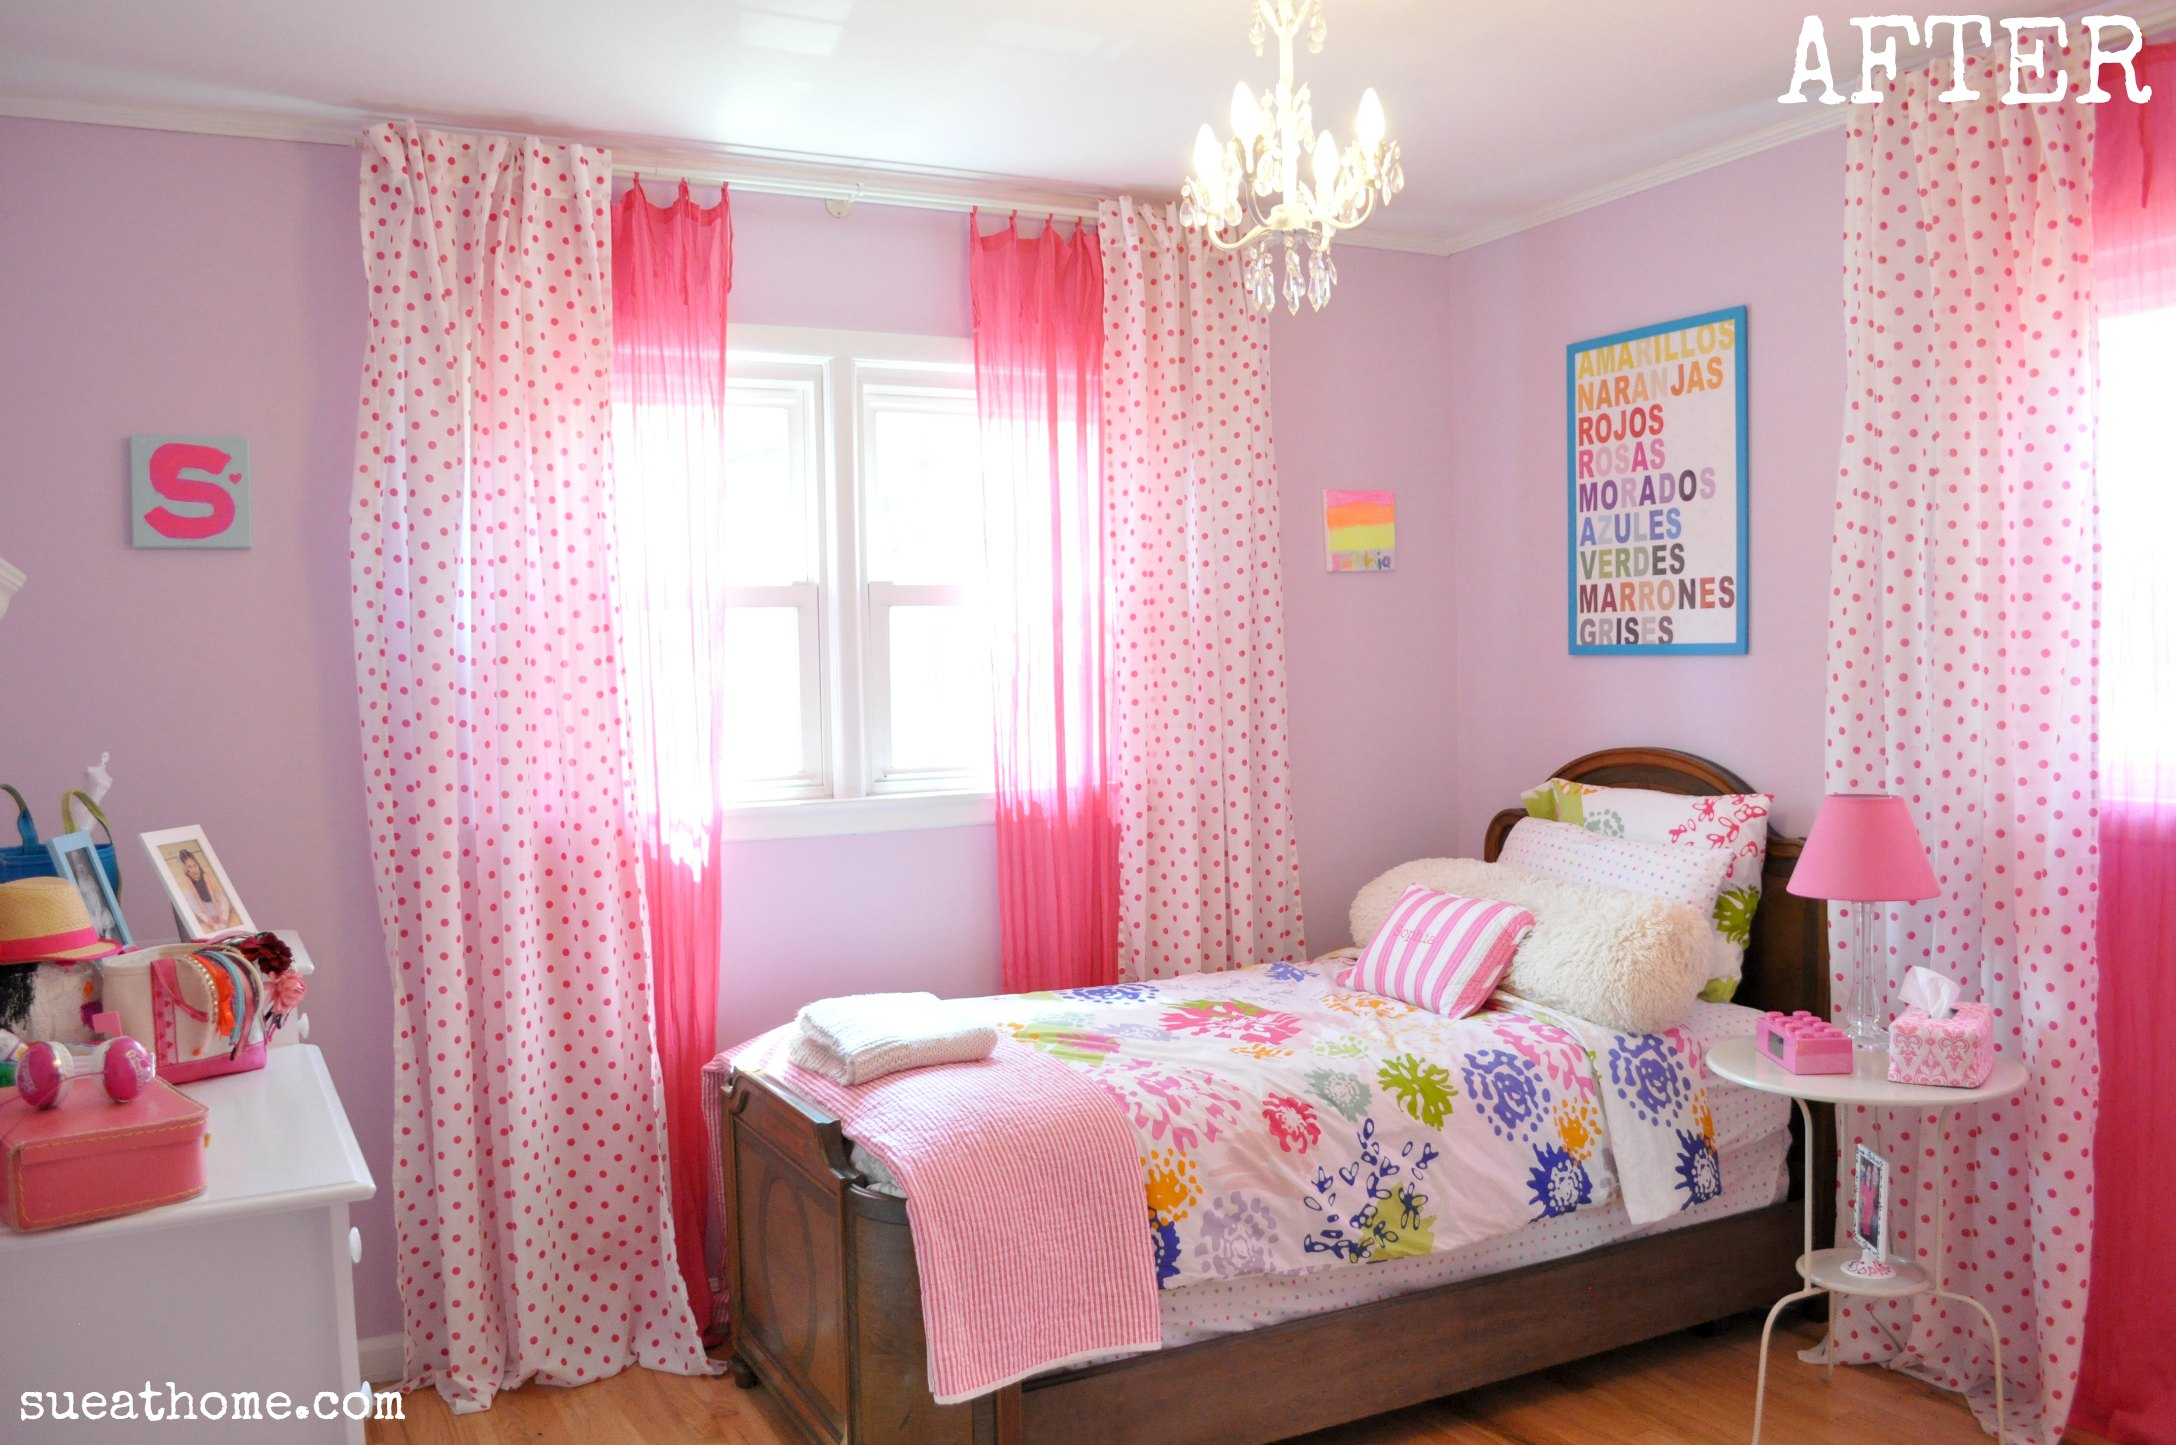 Tumblr Girl Bedroom Ideas 2176 x 1445